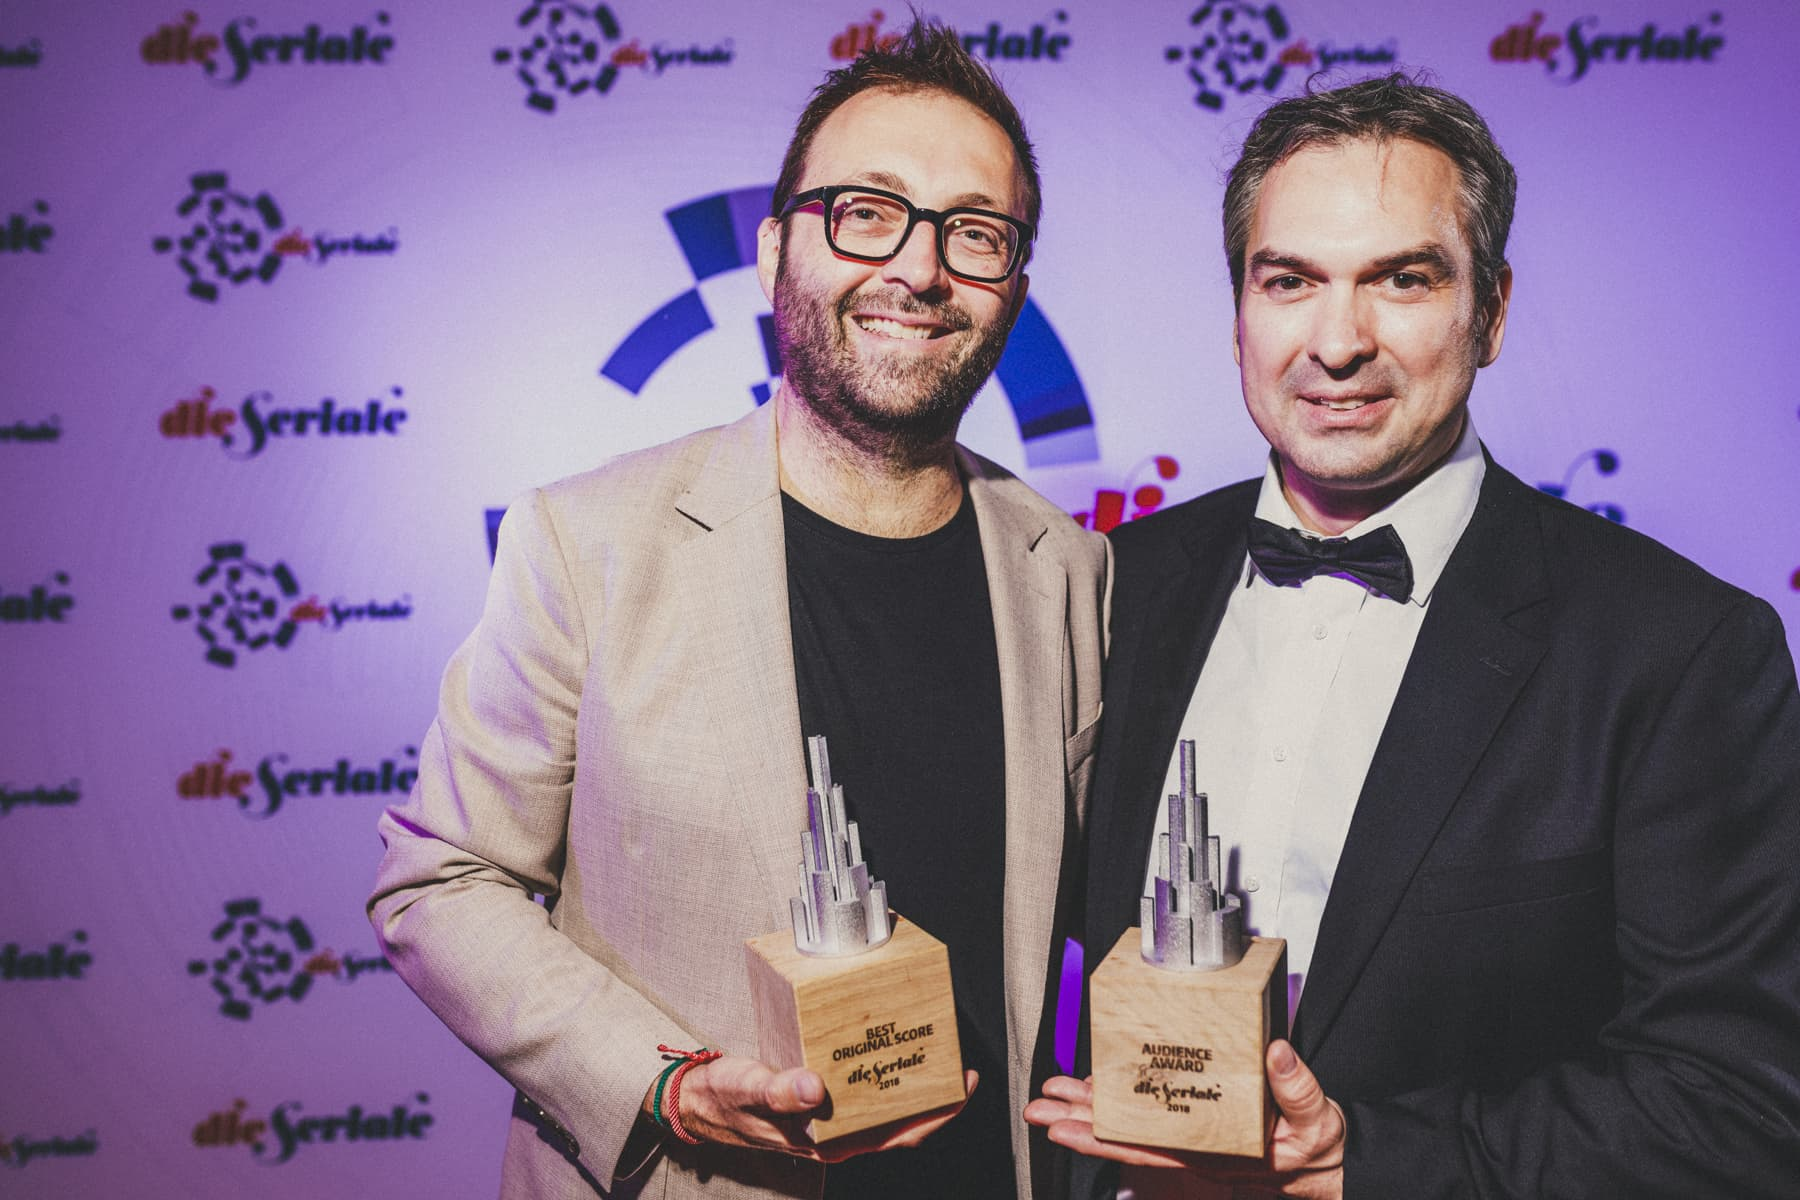 """AUDIENCE AWARD AND BEST ORIGINAL SONG - Luke Eve, director, co-creator & producer of """"High Life"""", from Australia, accepted the award on behalf of Sarah Blasko. On the picture together with festival director Csongor Dobrotka. 